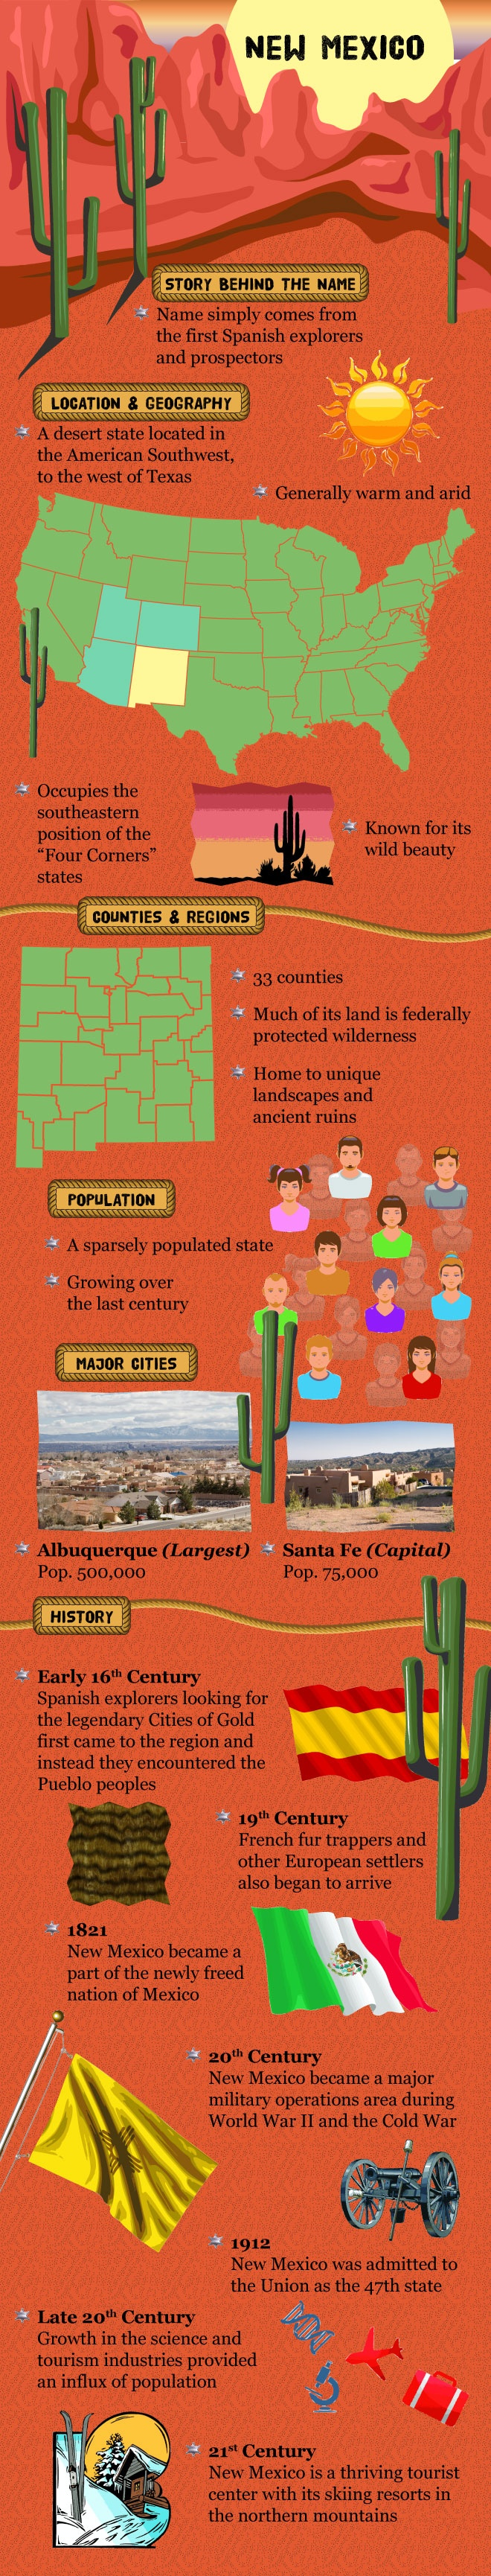 Infographic: Fast Facts about New Mexico